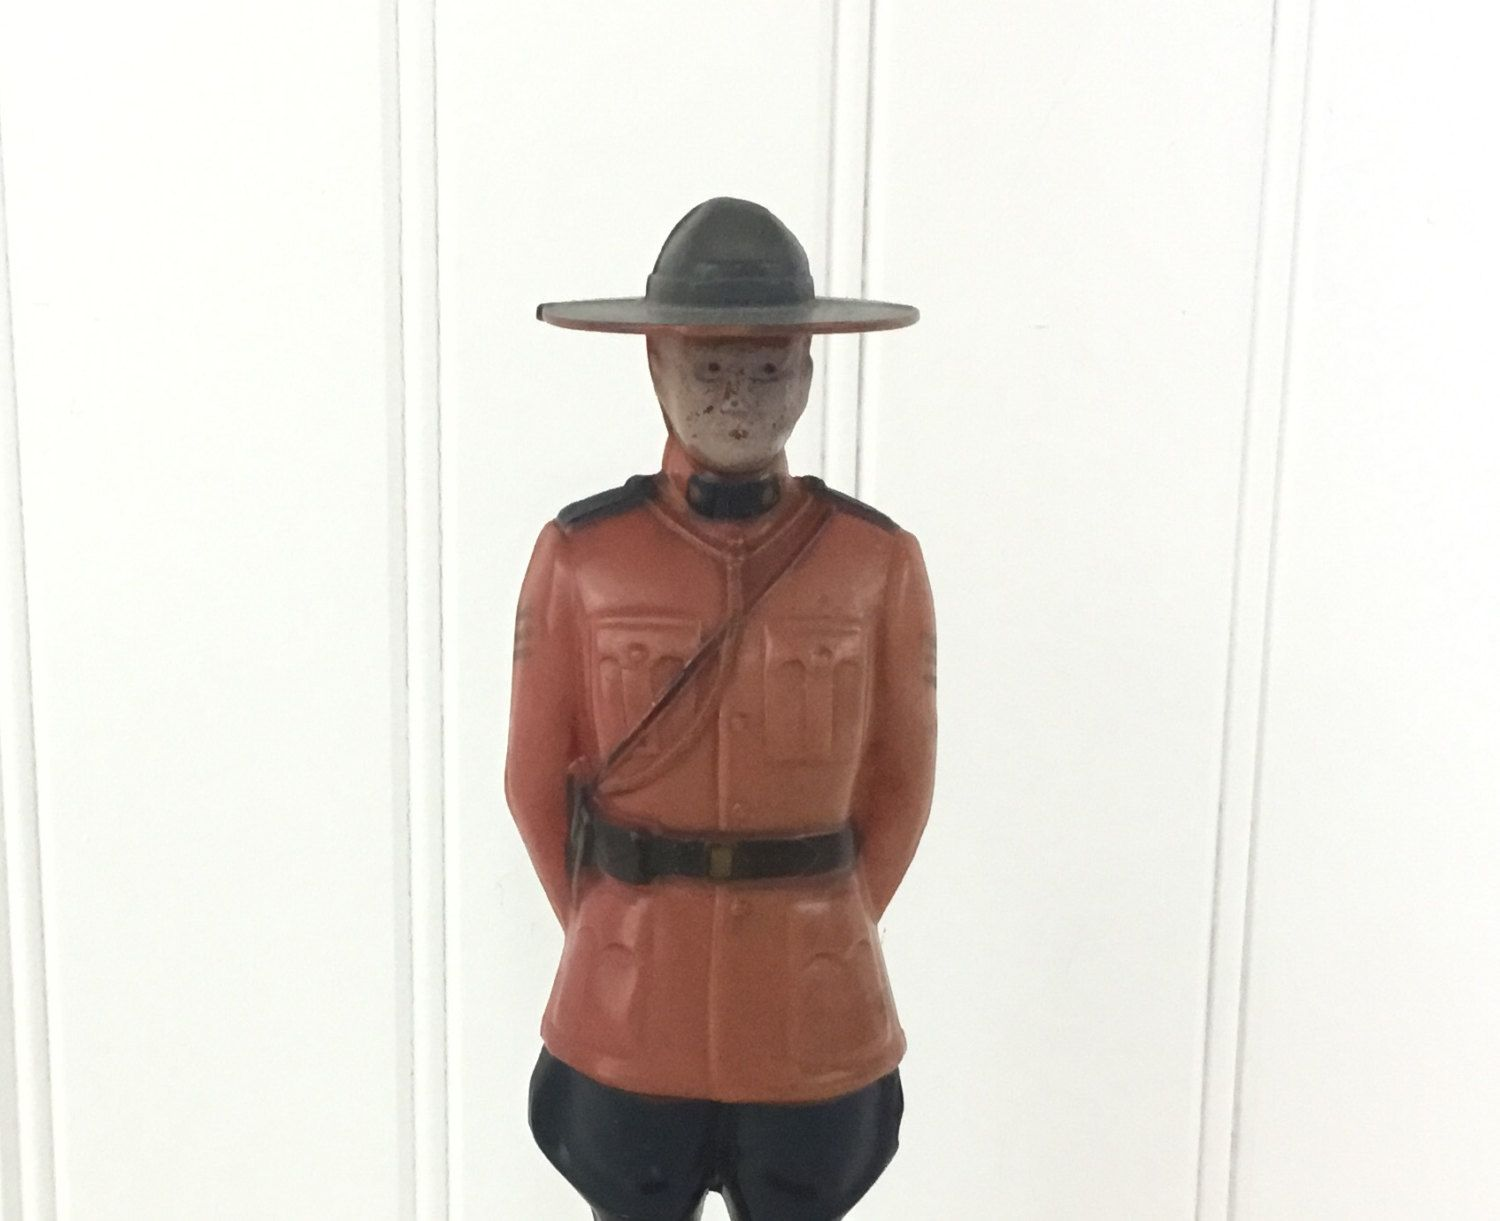 Vintage Royal Canadian Mountie Figurine Plastic Doll Sargent Pepper Reliable Collectible Made in Canada RCMP Souvenir Red